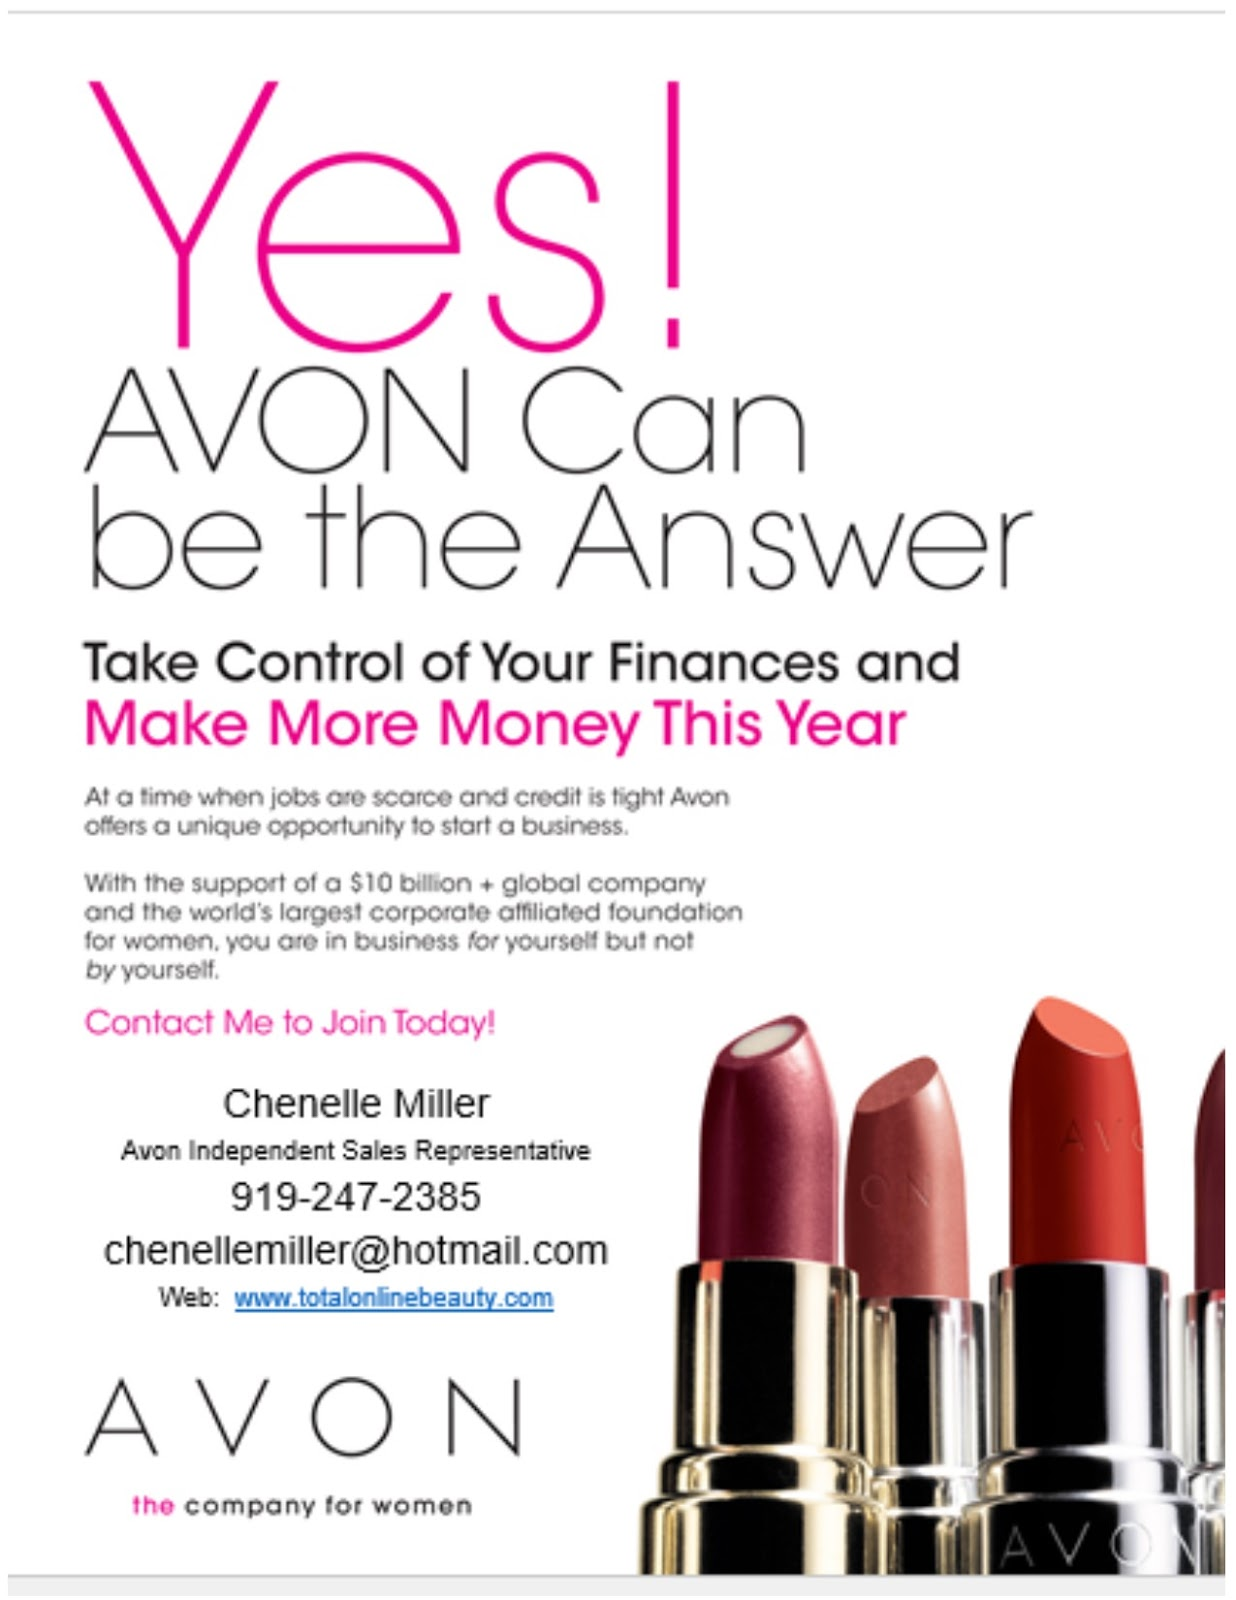 AVON is a world famous Beauty and Cosmetics brand with Years of proven success. They are currently looking for new full and part time representatives in the UK today.